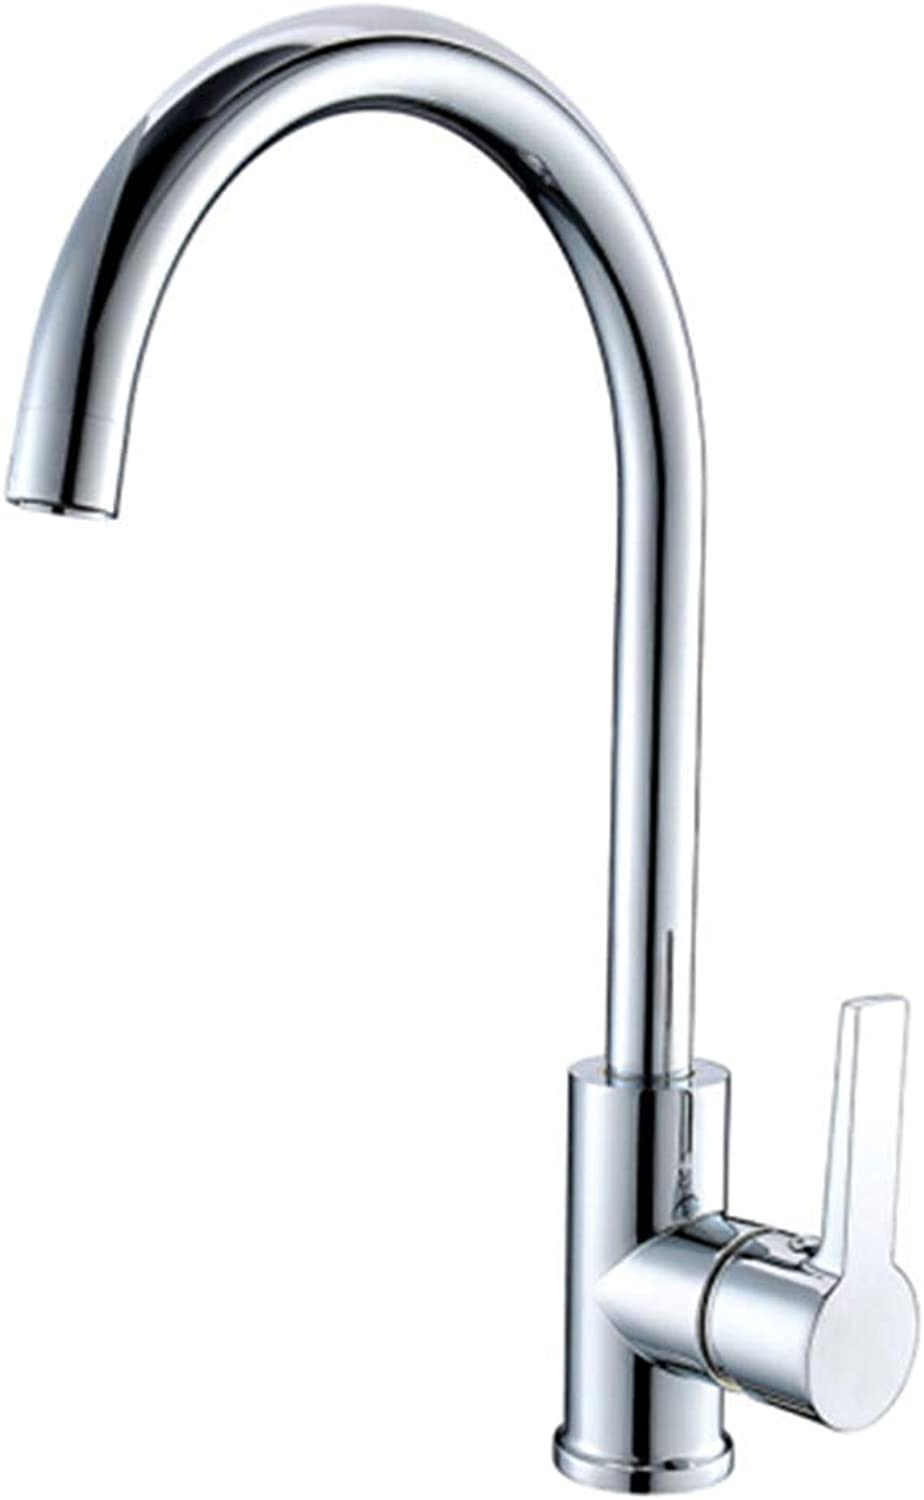 All Copper tap, Swivel Faucet, Vegetable Basin Faucet, hot and Cold Water Tank Faucet.